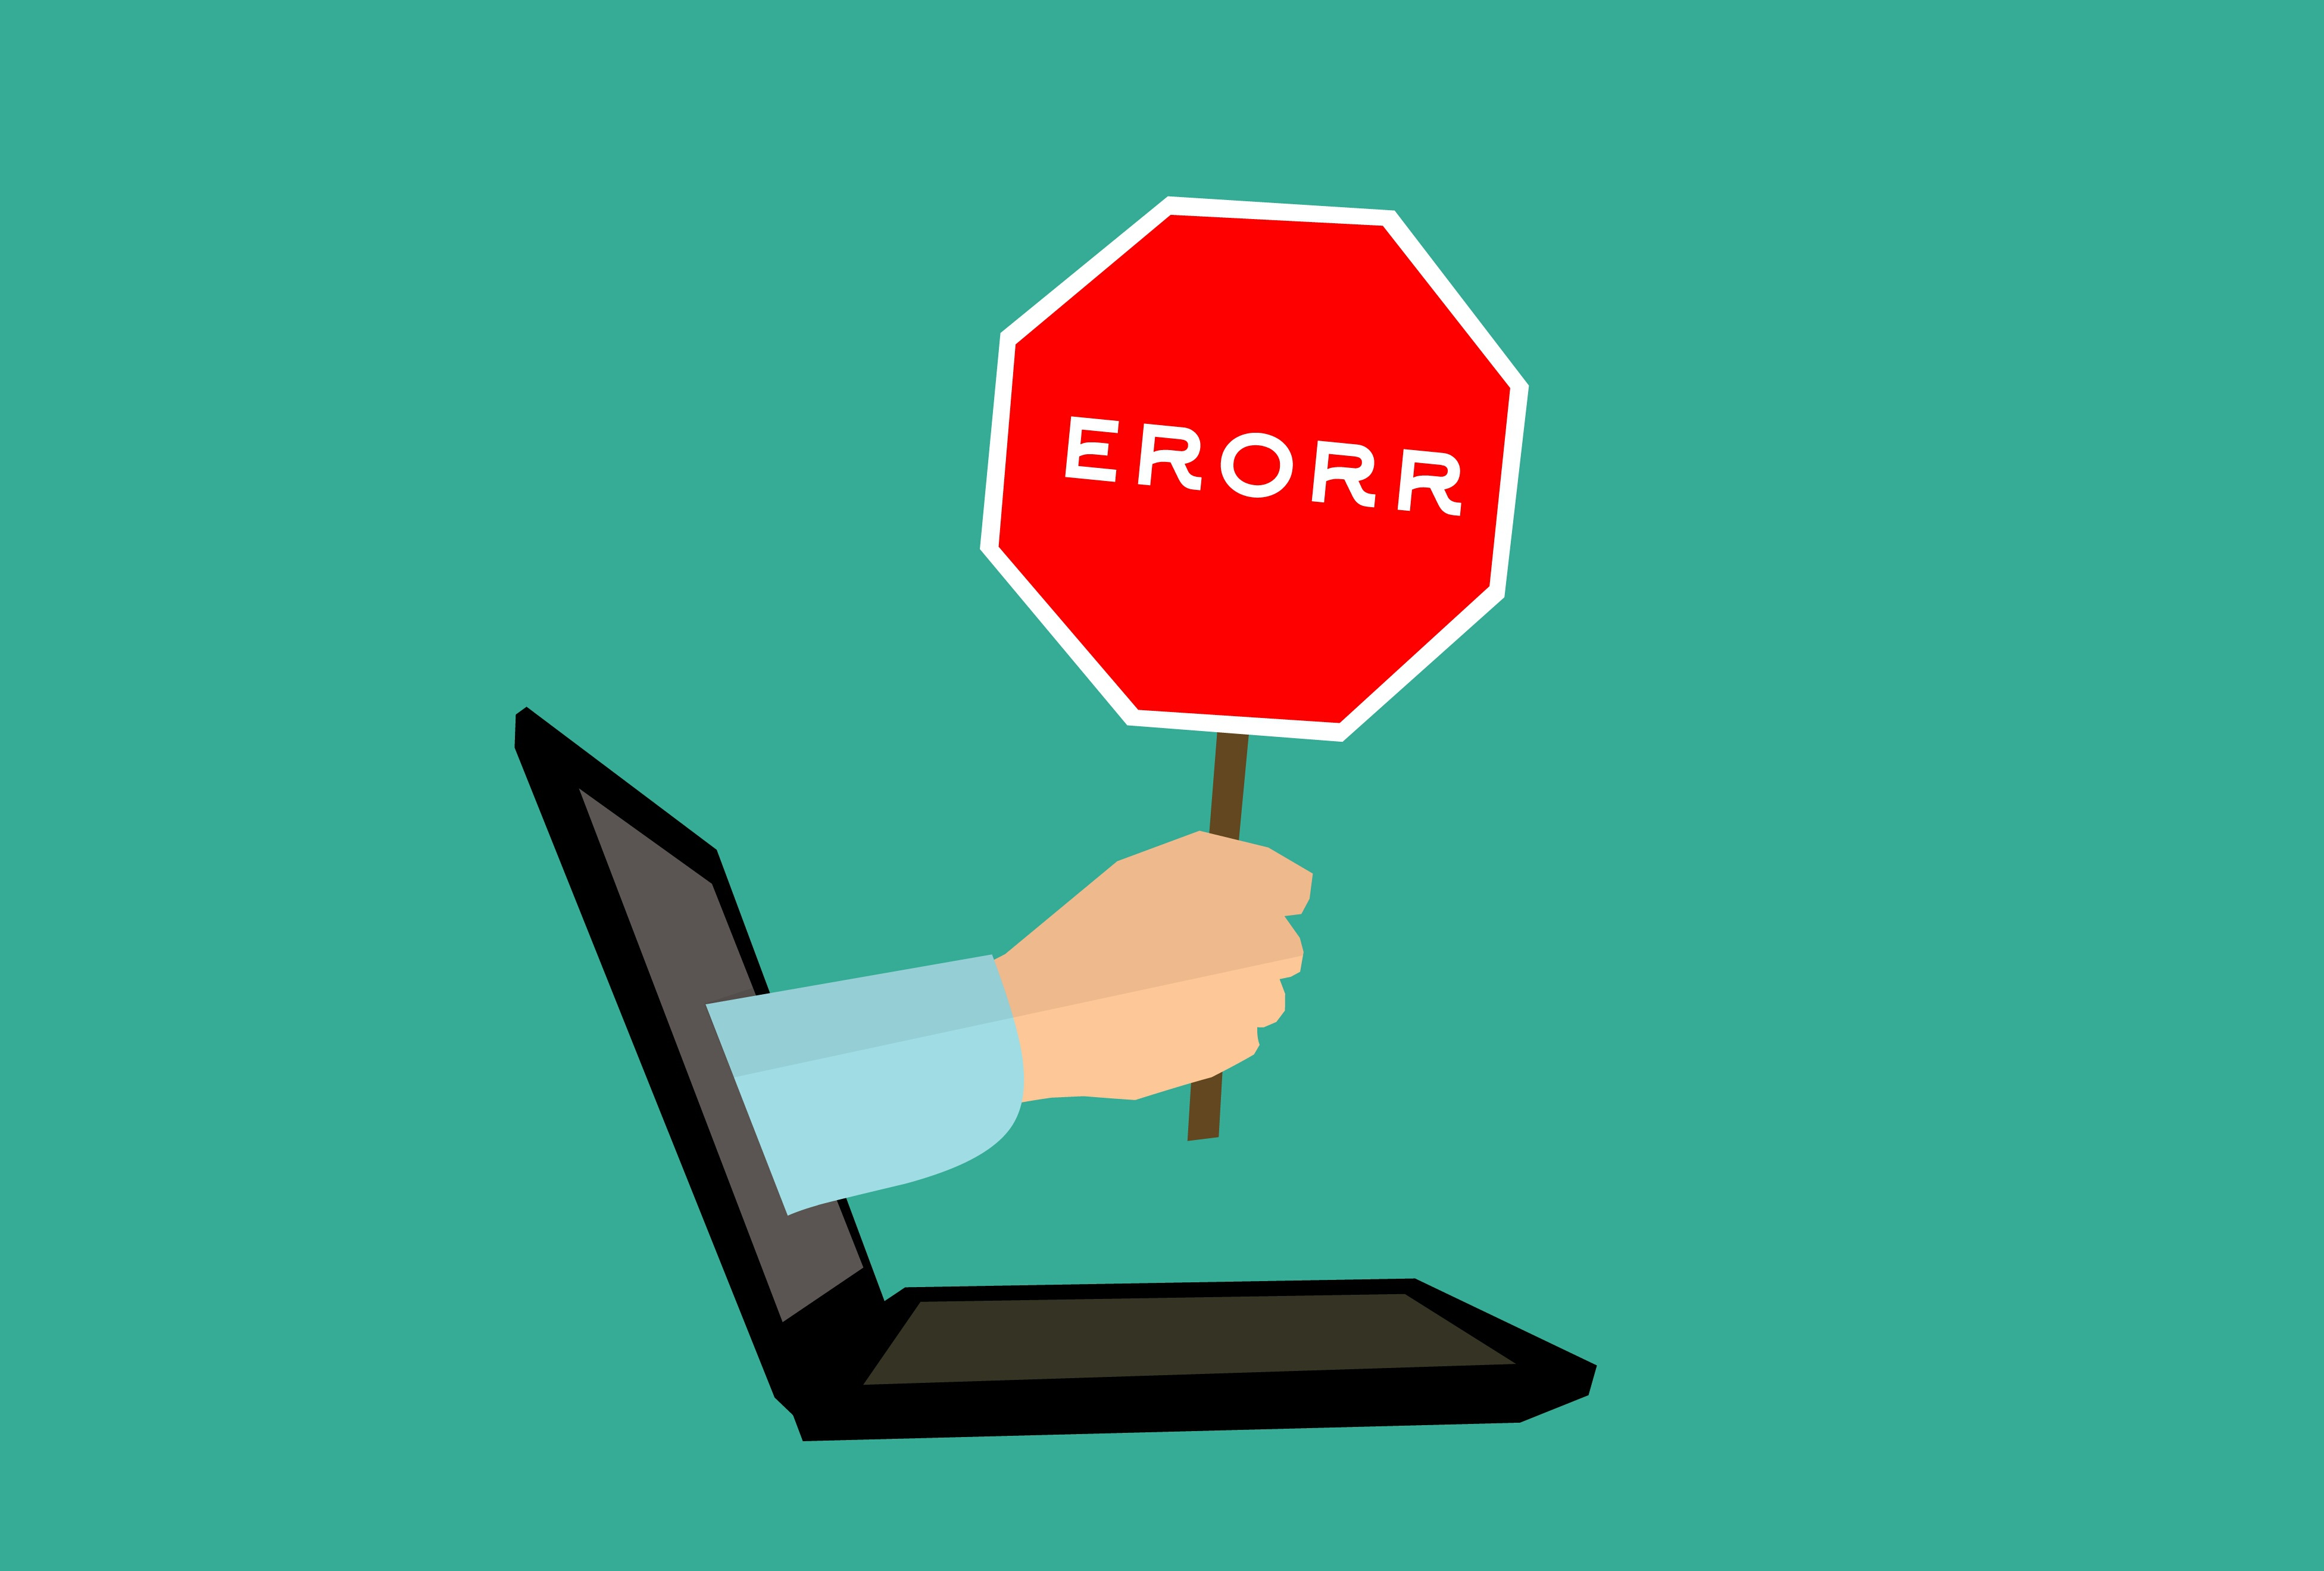 How to properly configure Coveo for Sitecore to avoid 401 unauthorized error messages